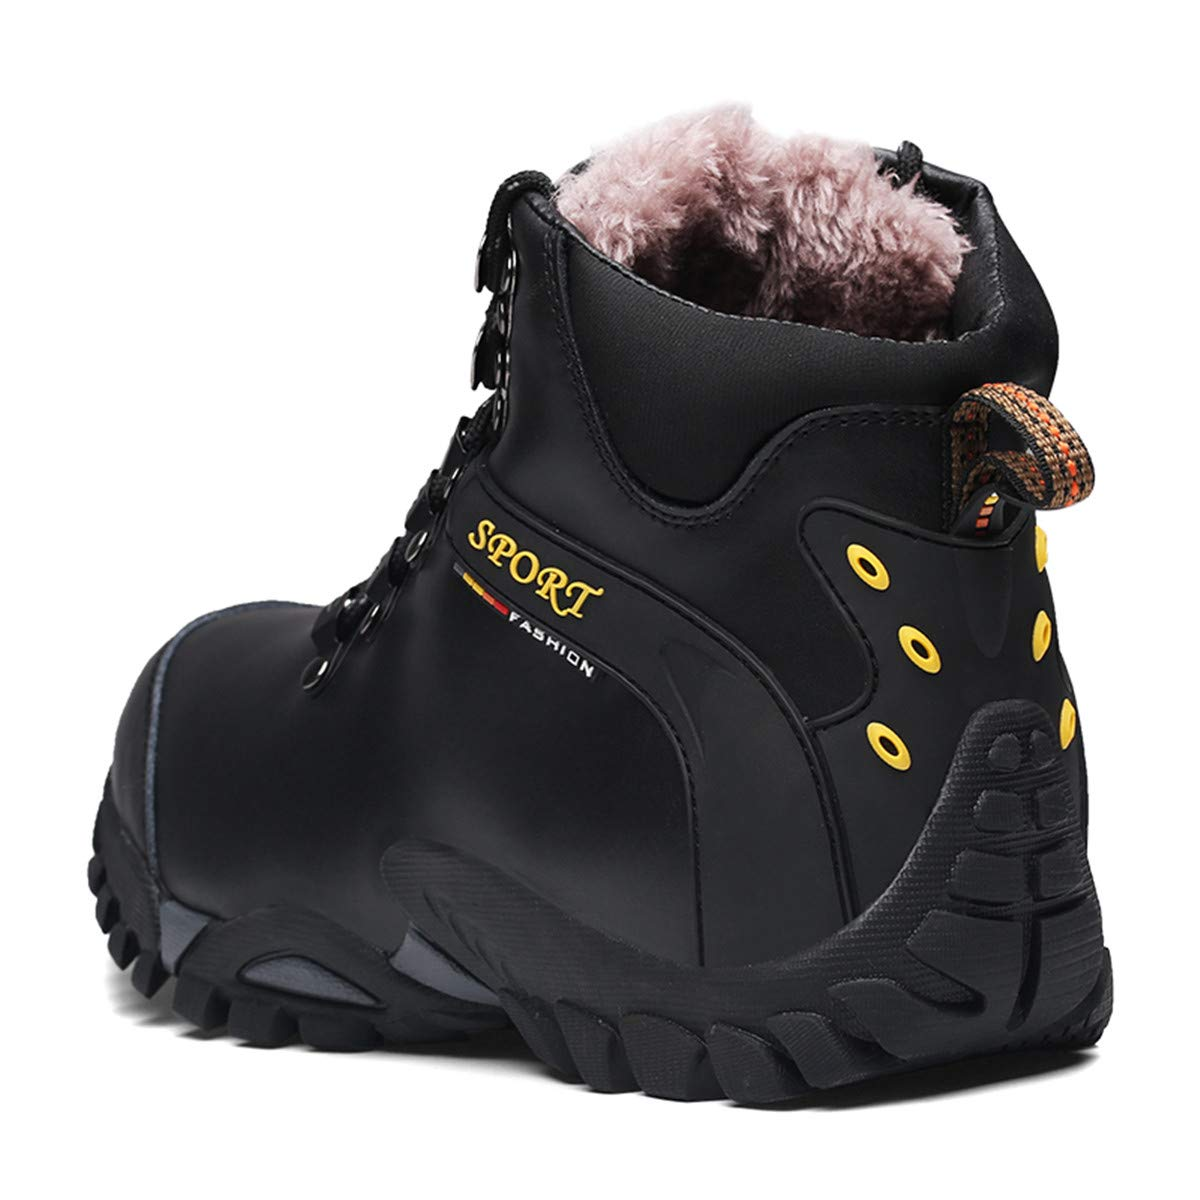 Hanhequhui Winter Men Boots with Fur Casual Warm Snow Leather Work Footwear Ankle Shoes